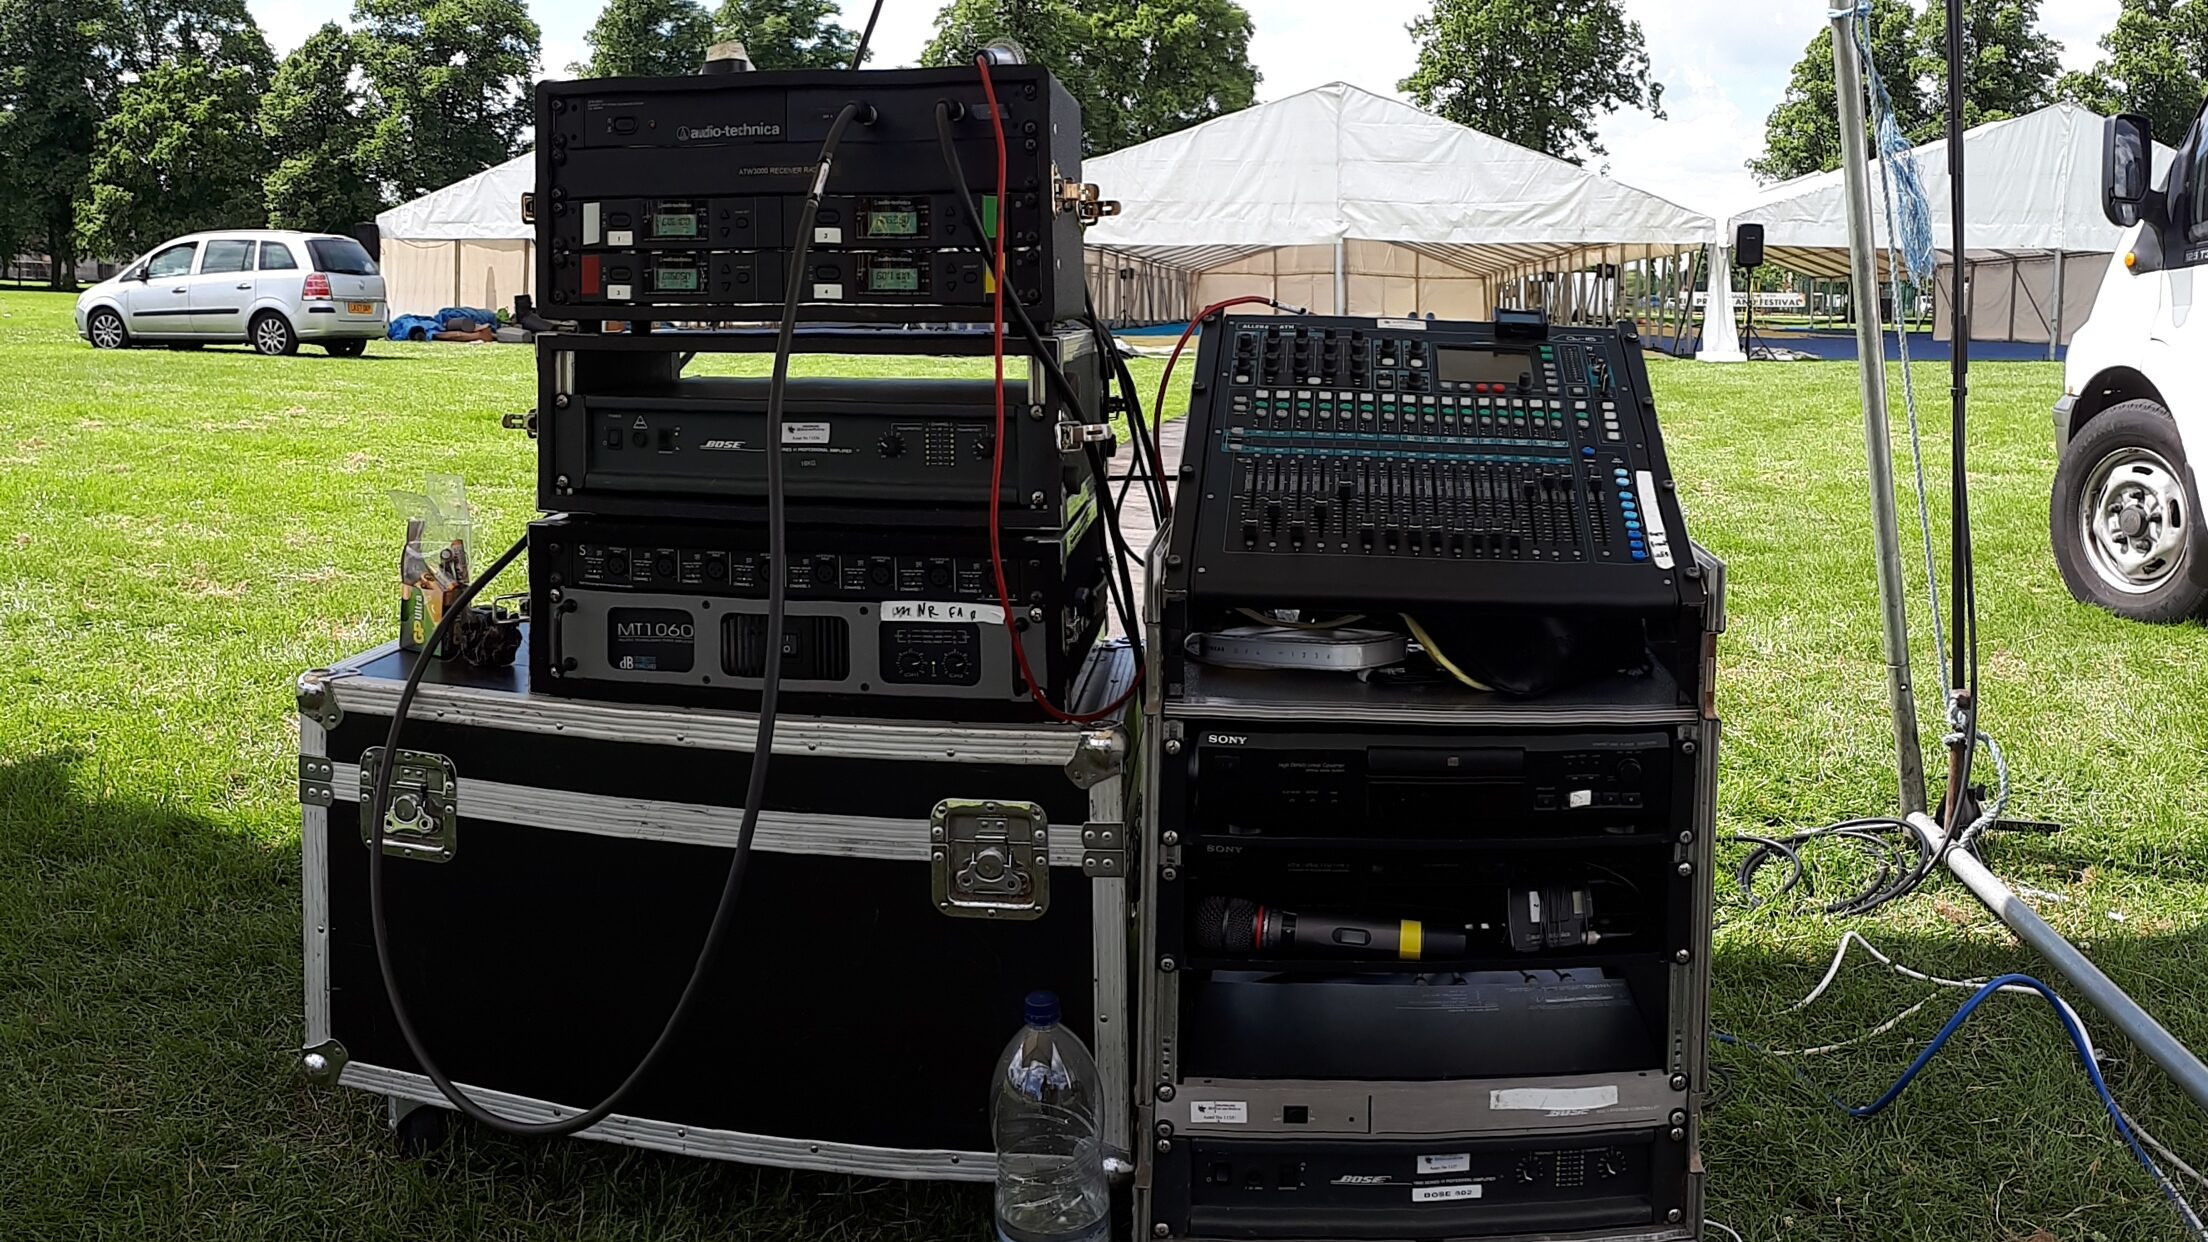 EES Showhire provide bespoke outdoor PA hire solutions for events and marquees